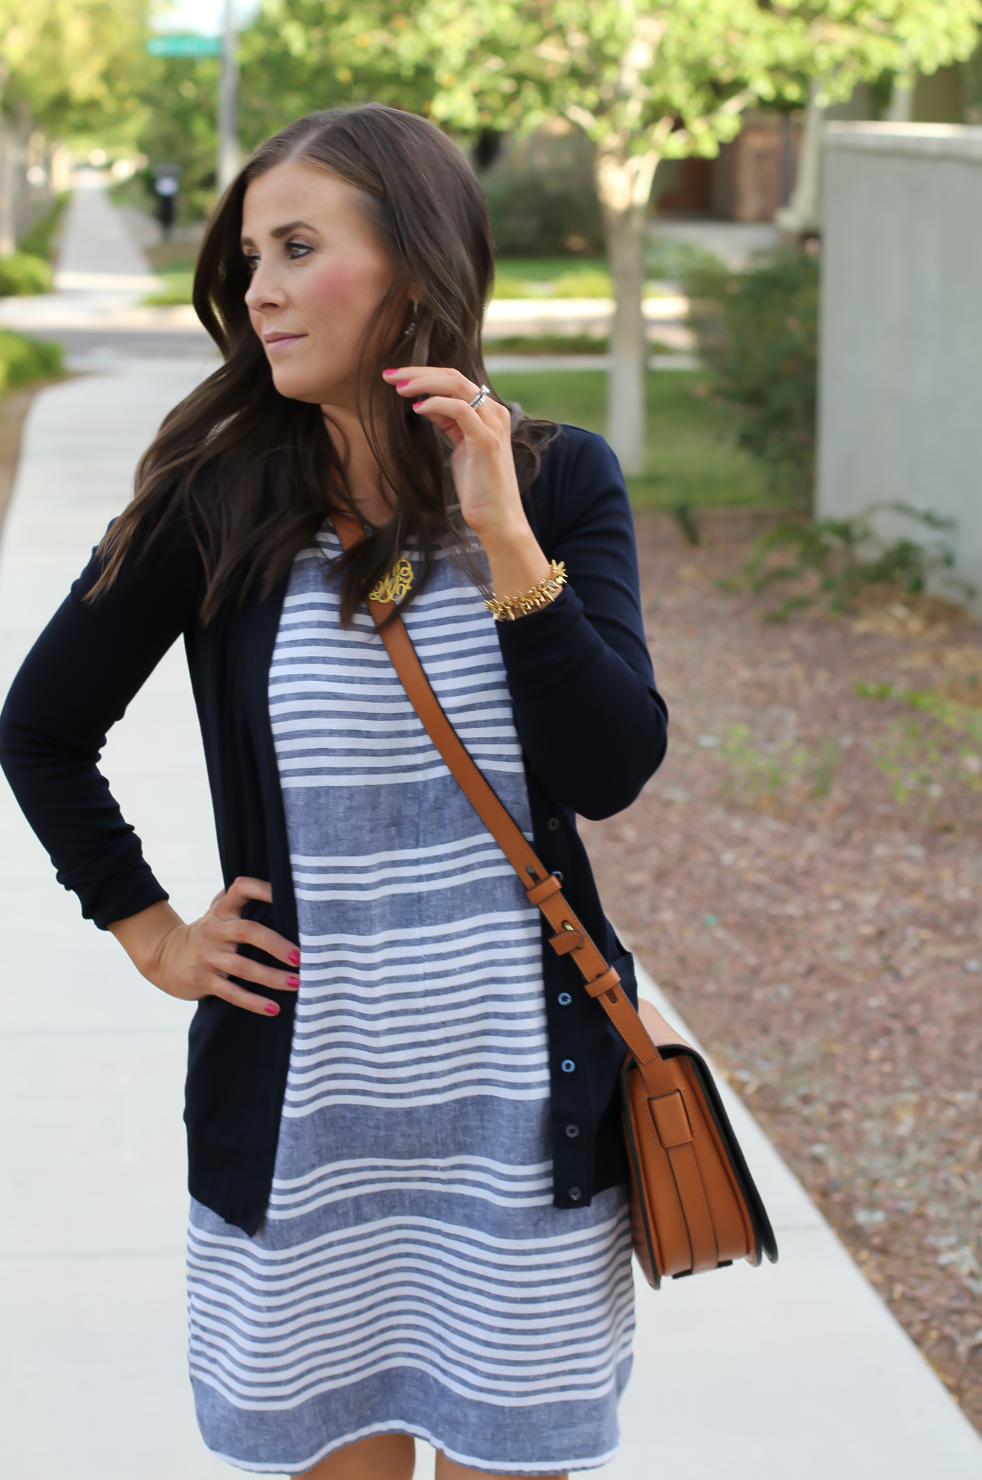 Blue Chambray White Striped Dress, Navy Cotton Cardigan, Tan Suede Espadrilles, Tan Leather Crossbody, Old Navy, J.Crew, Chloe, Tory Burch 12